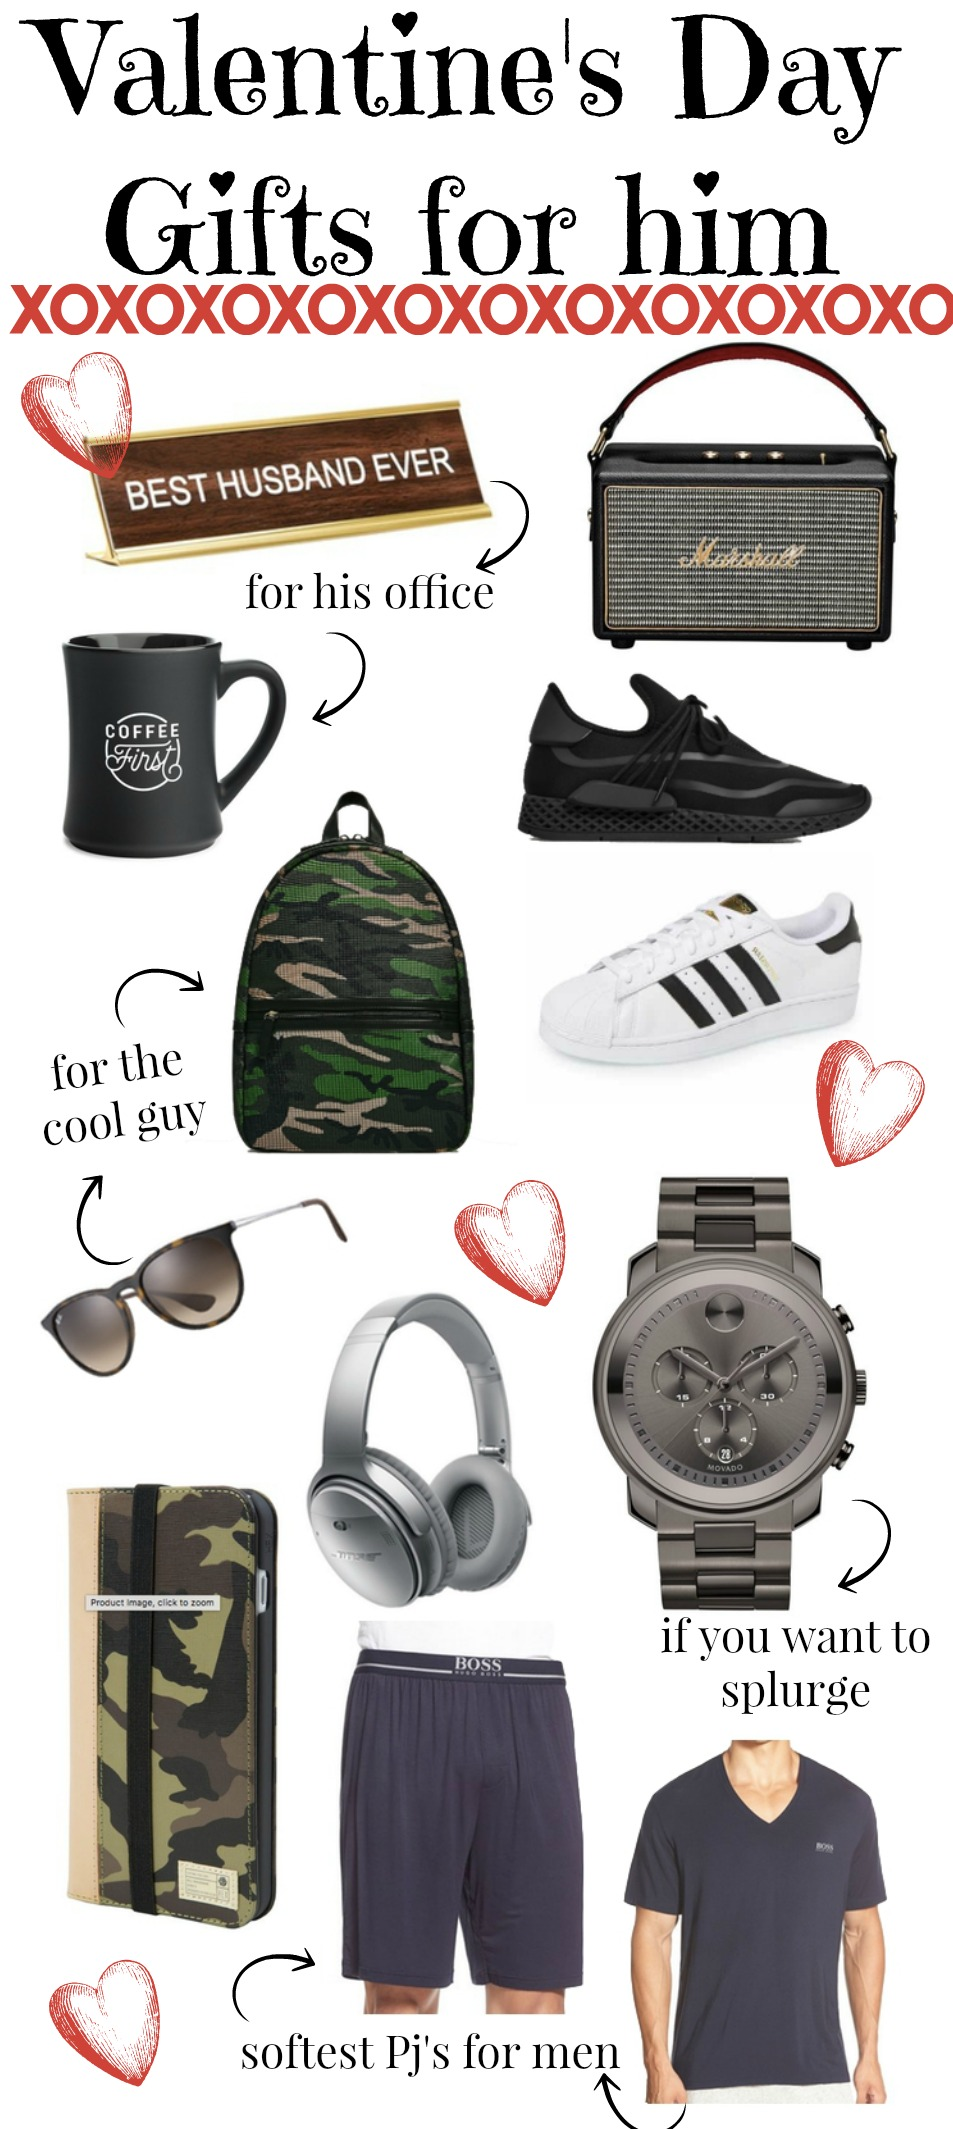 valentine's day gift ideas for him | gift ideas for him | Valentine's Day | Uptown with Elly Brown